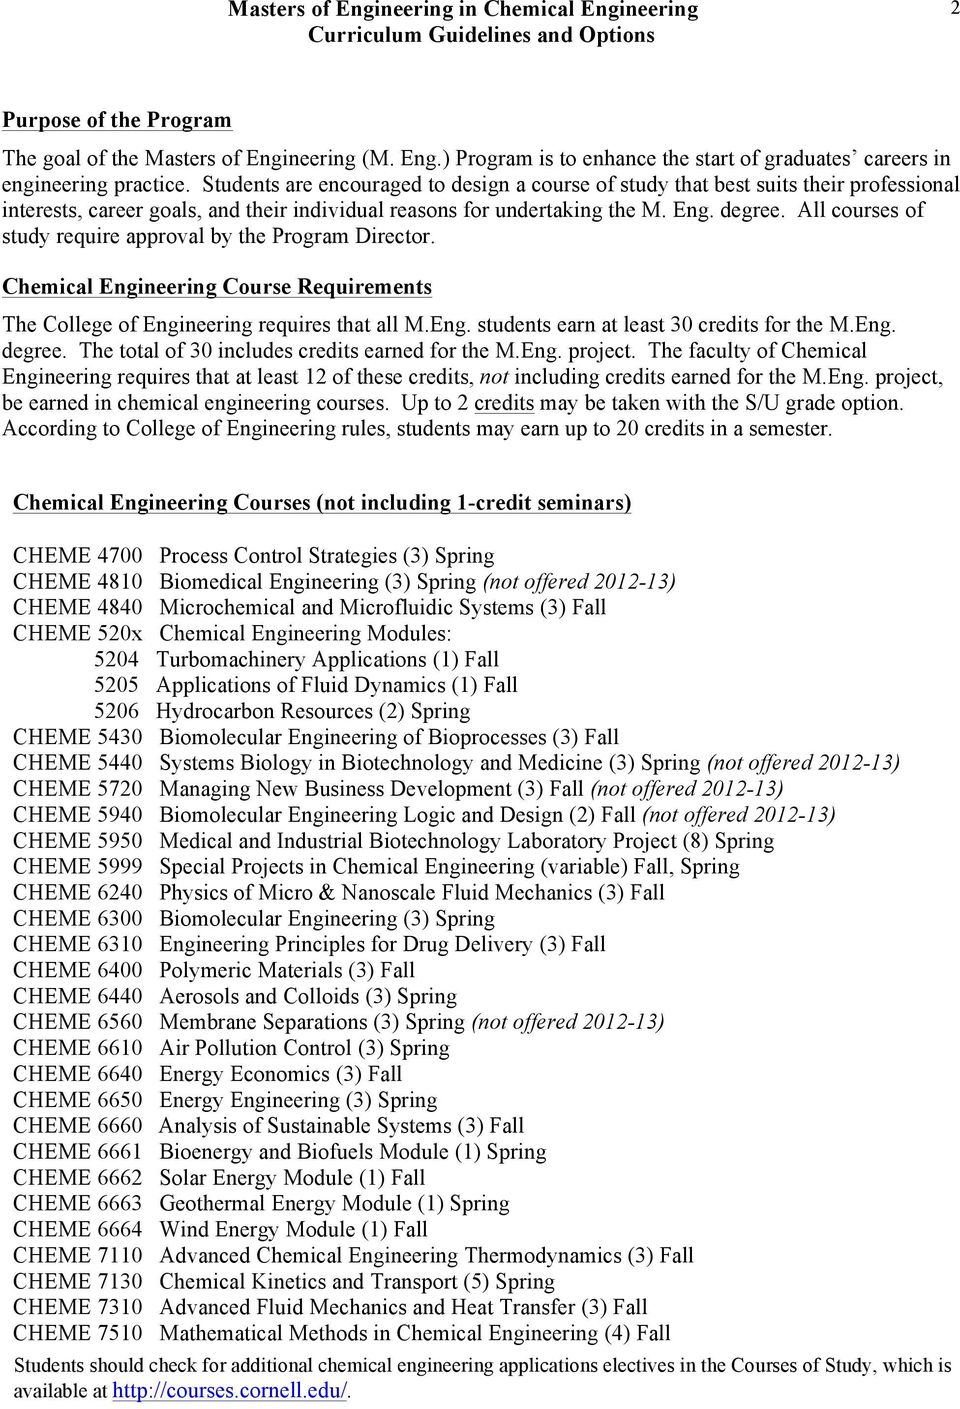 Courses required to become a chemical engineer?